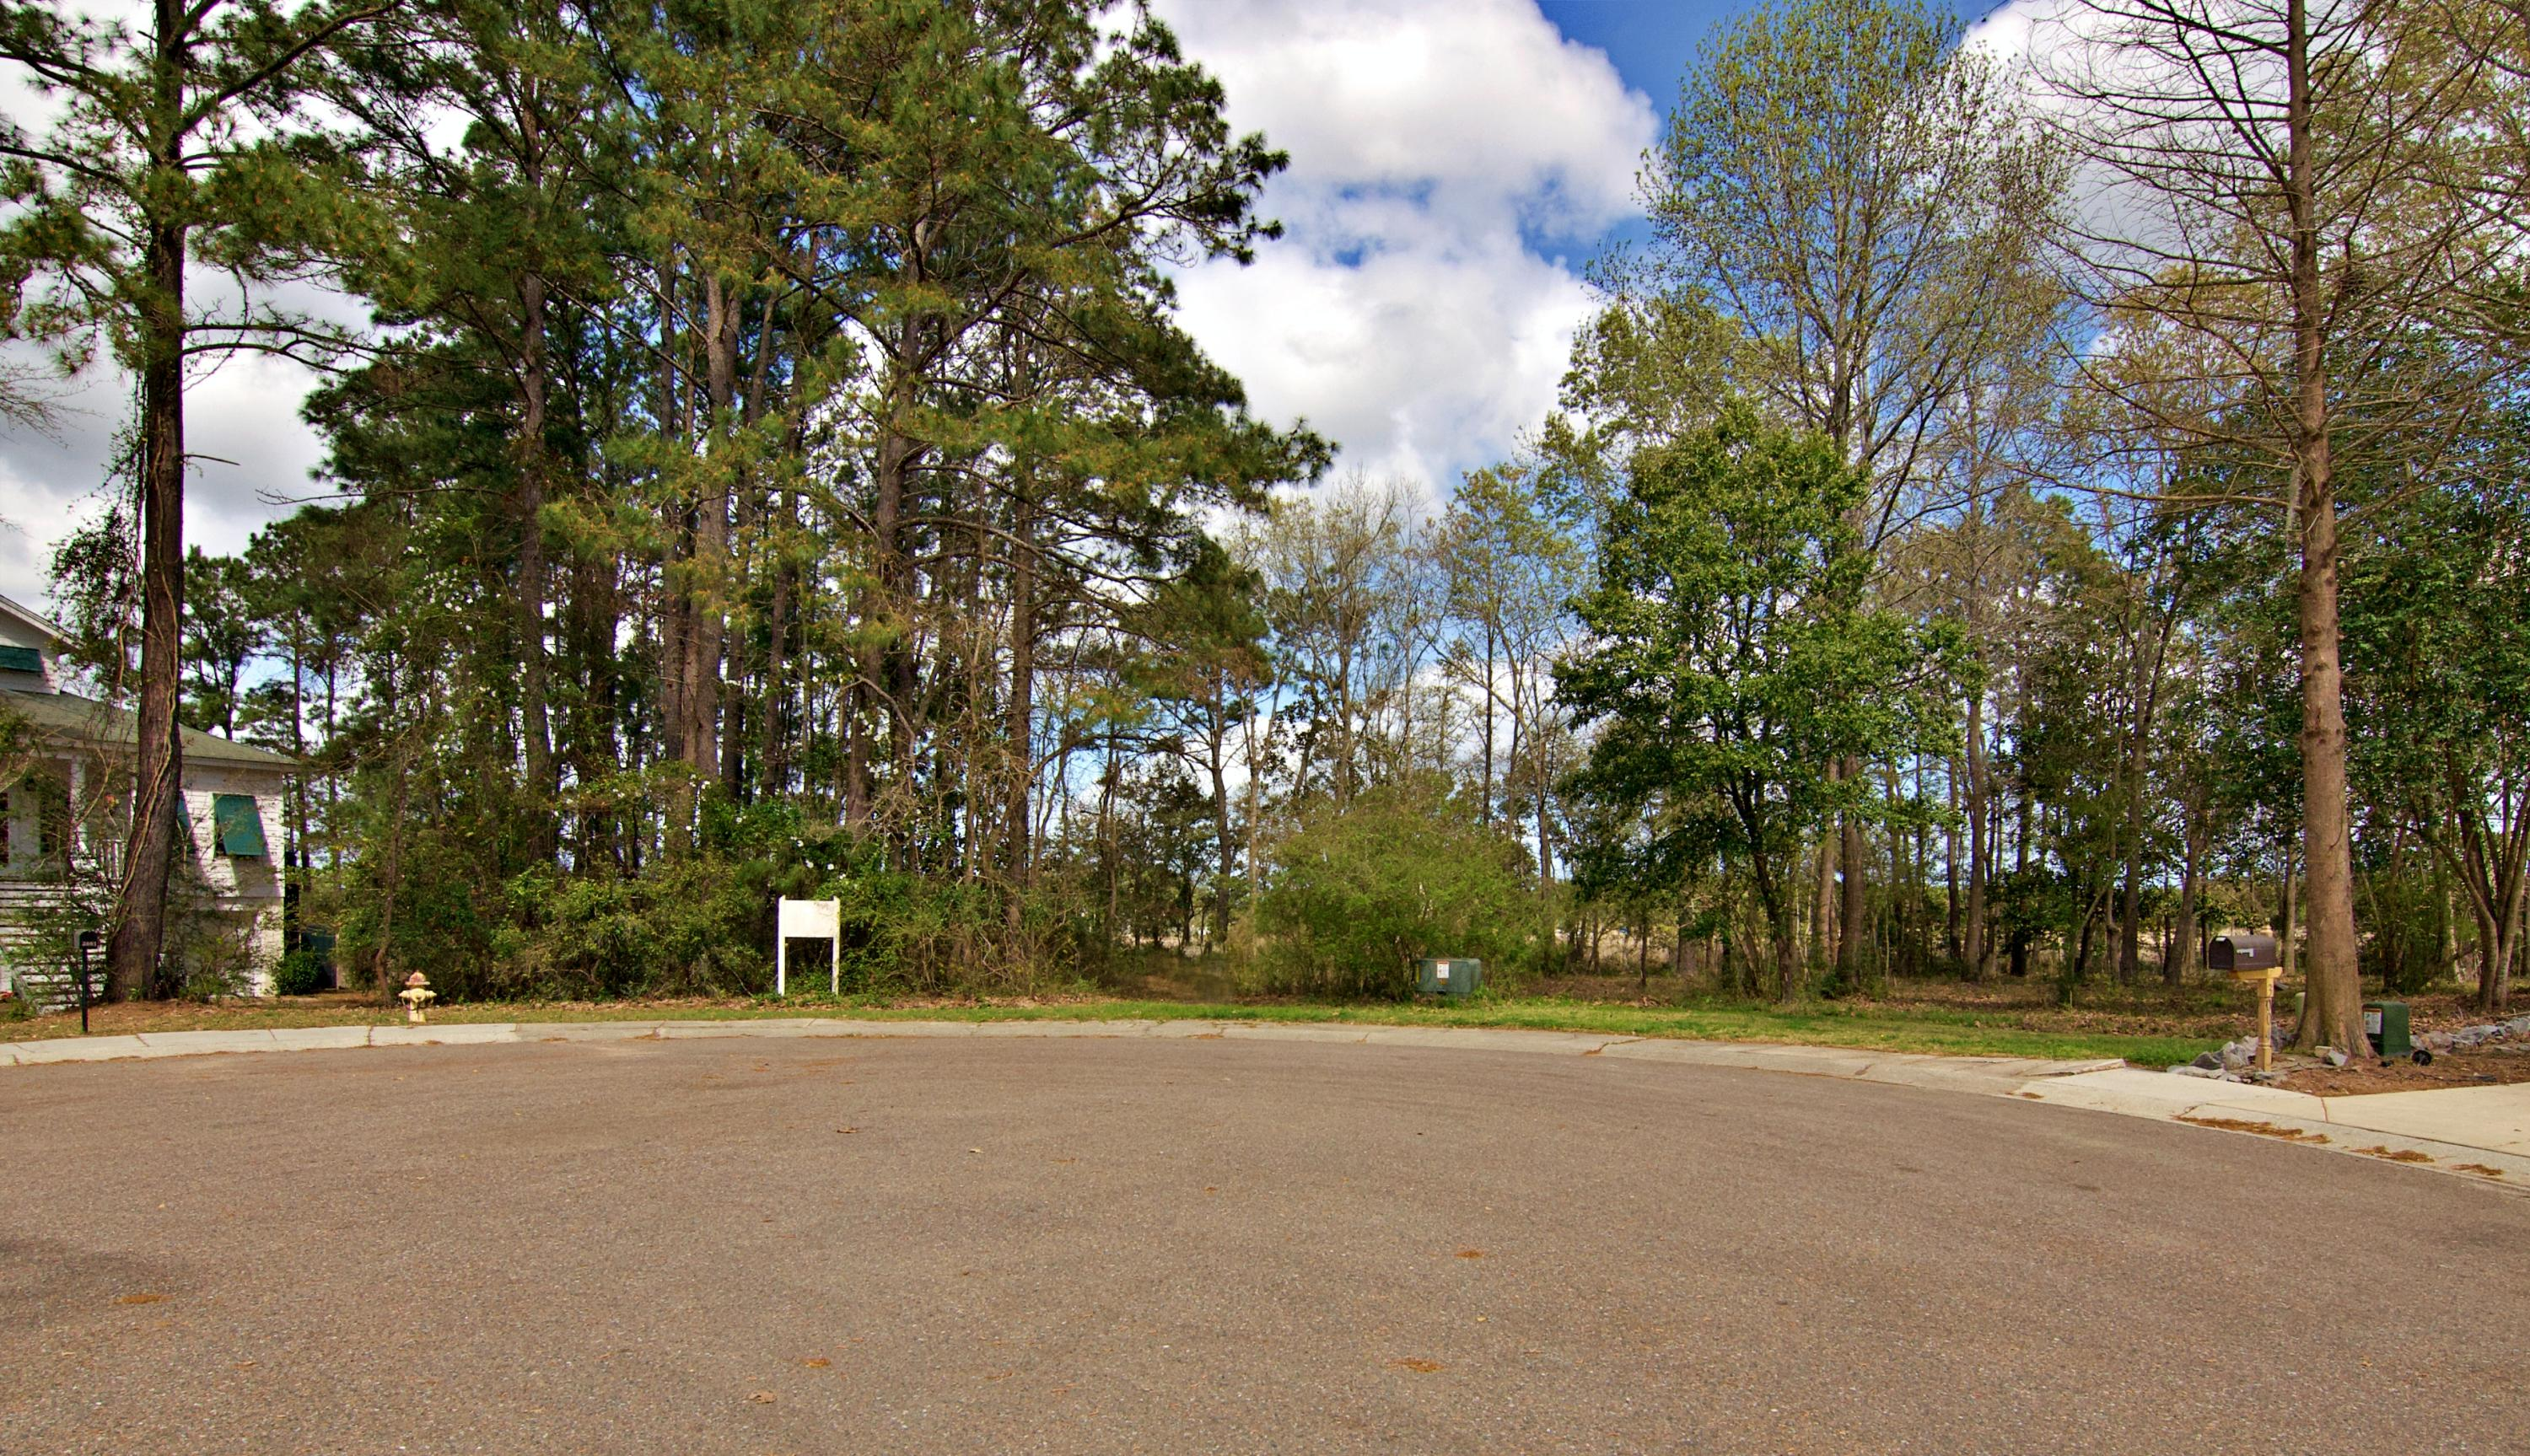 Rushland Mews Johns Island, SC 29455